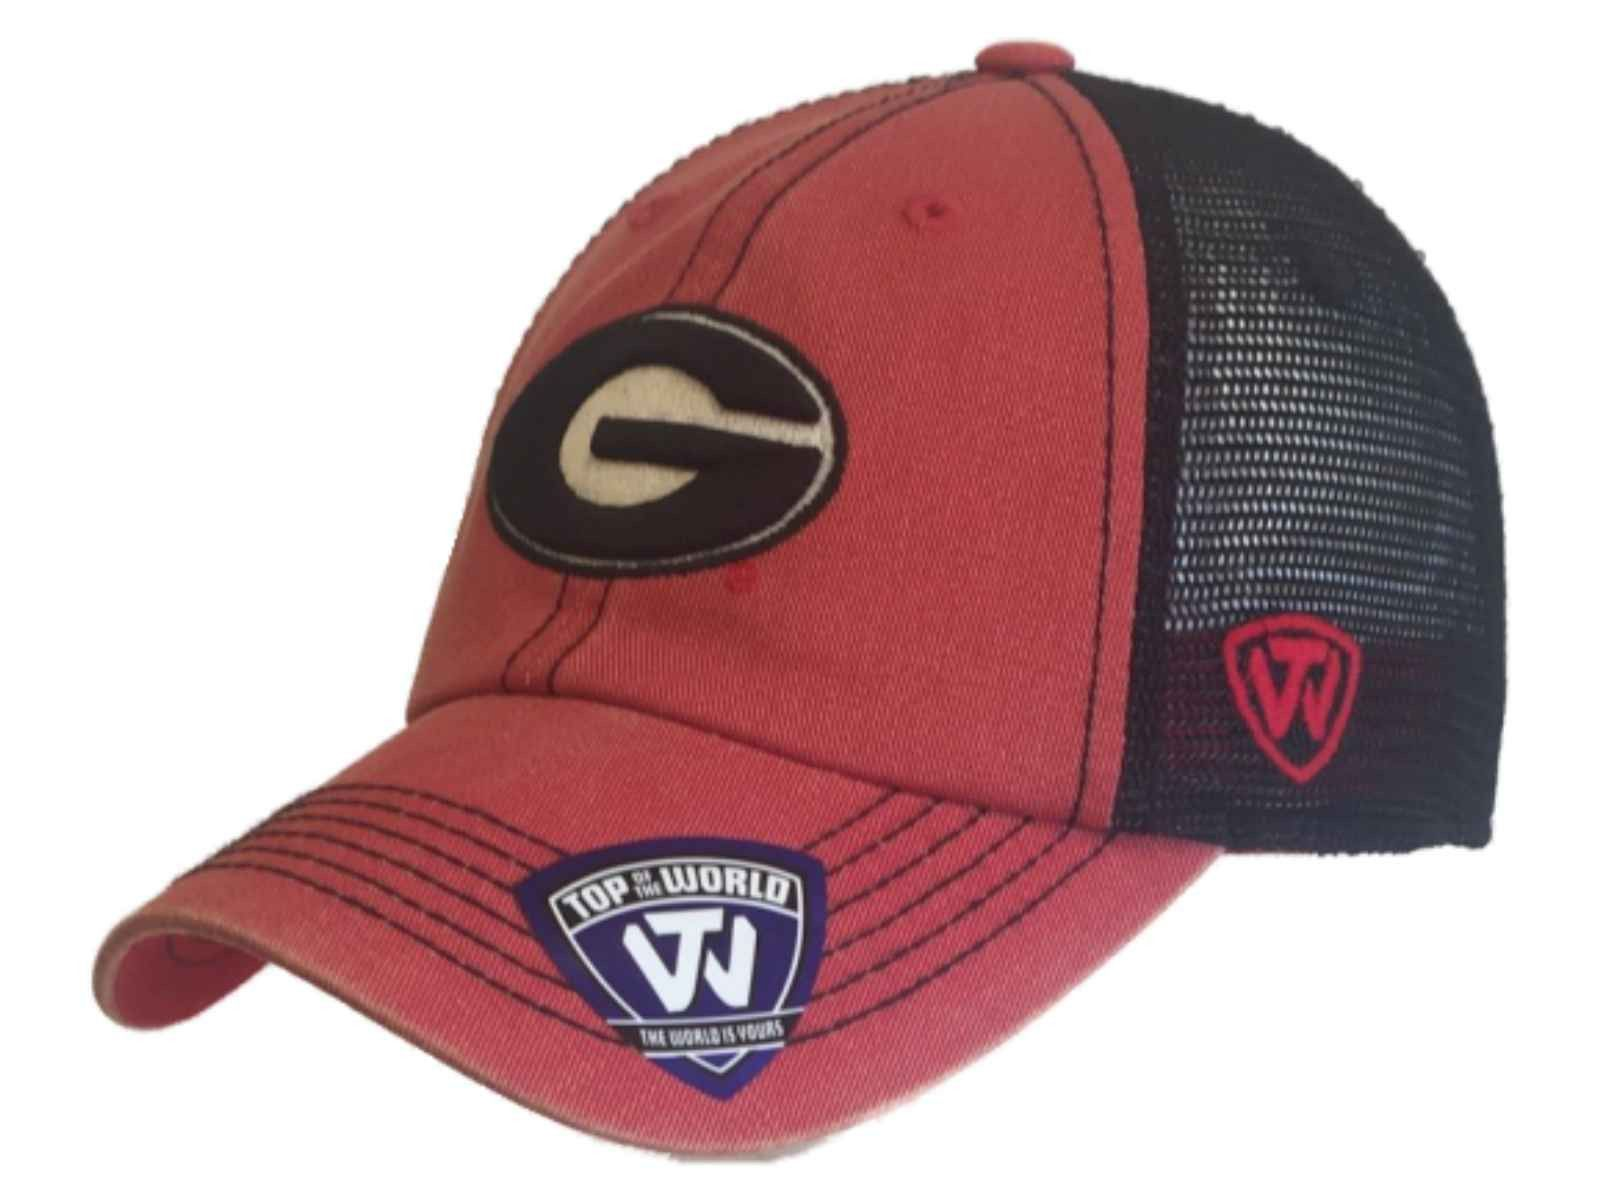 Georgia Bulldogs TOW Red Black Crossroads Mesh Adjustable Snapback Hat Cap 70ef415cb2d